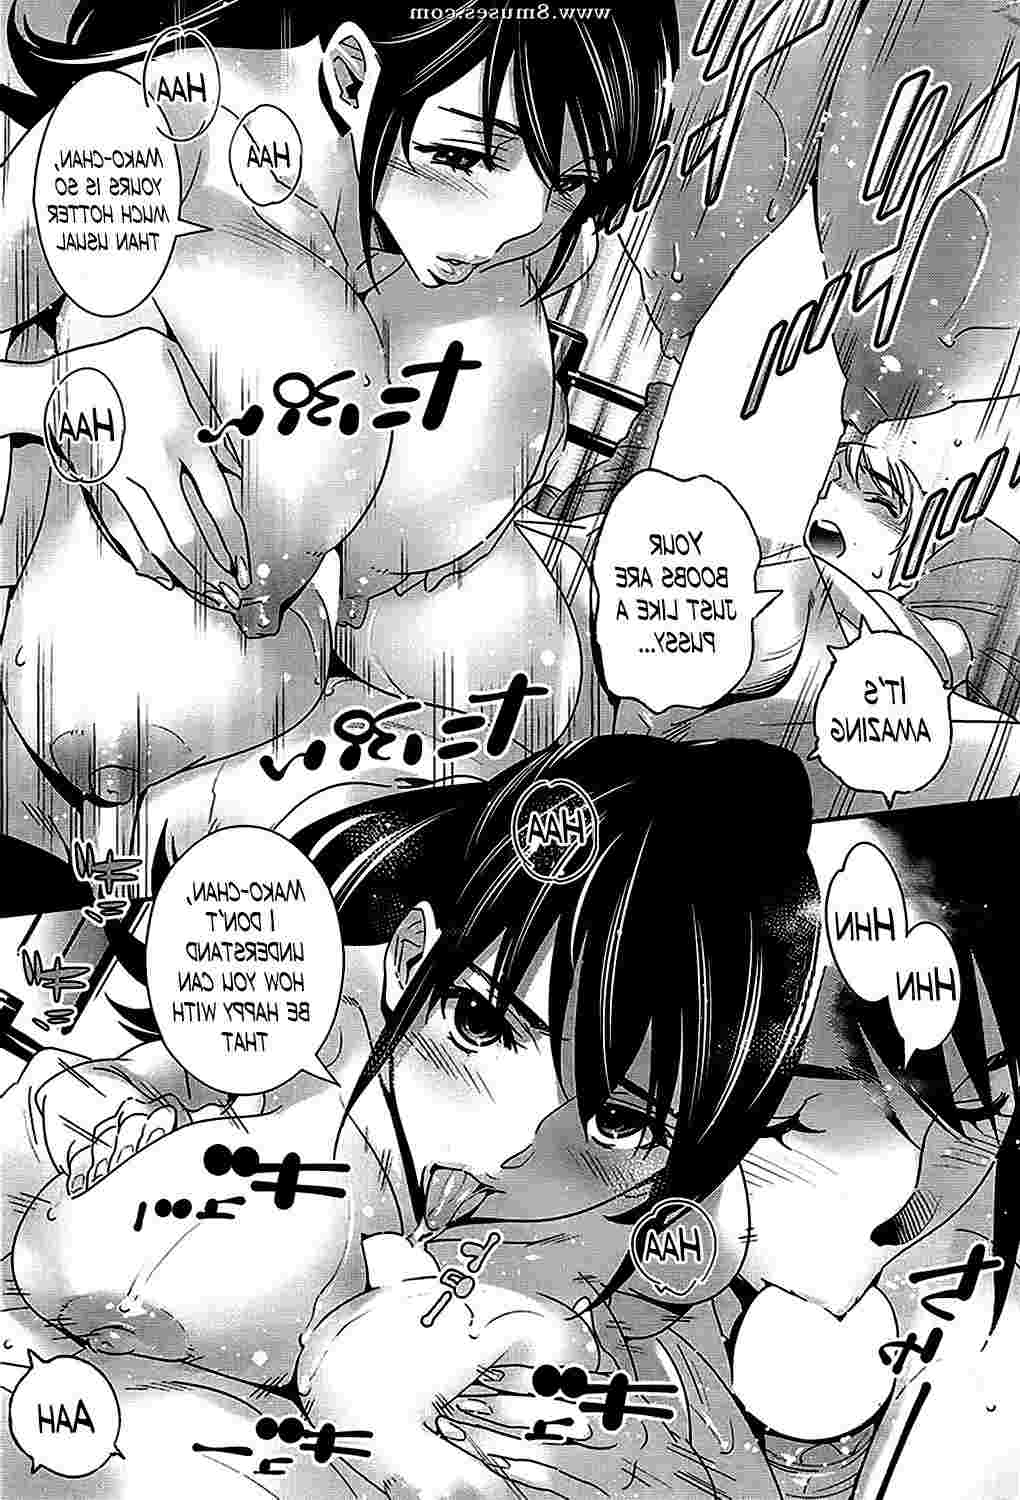 Hentai-and-Manga-English/Katsura-Yoshihiro/The-Ghost-Behind-My-Back The_Ghost_Behind_My_Back__8muses_-_Sex_and_Porn_Comics_30.jpg